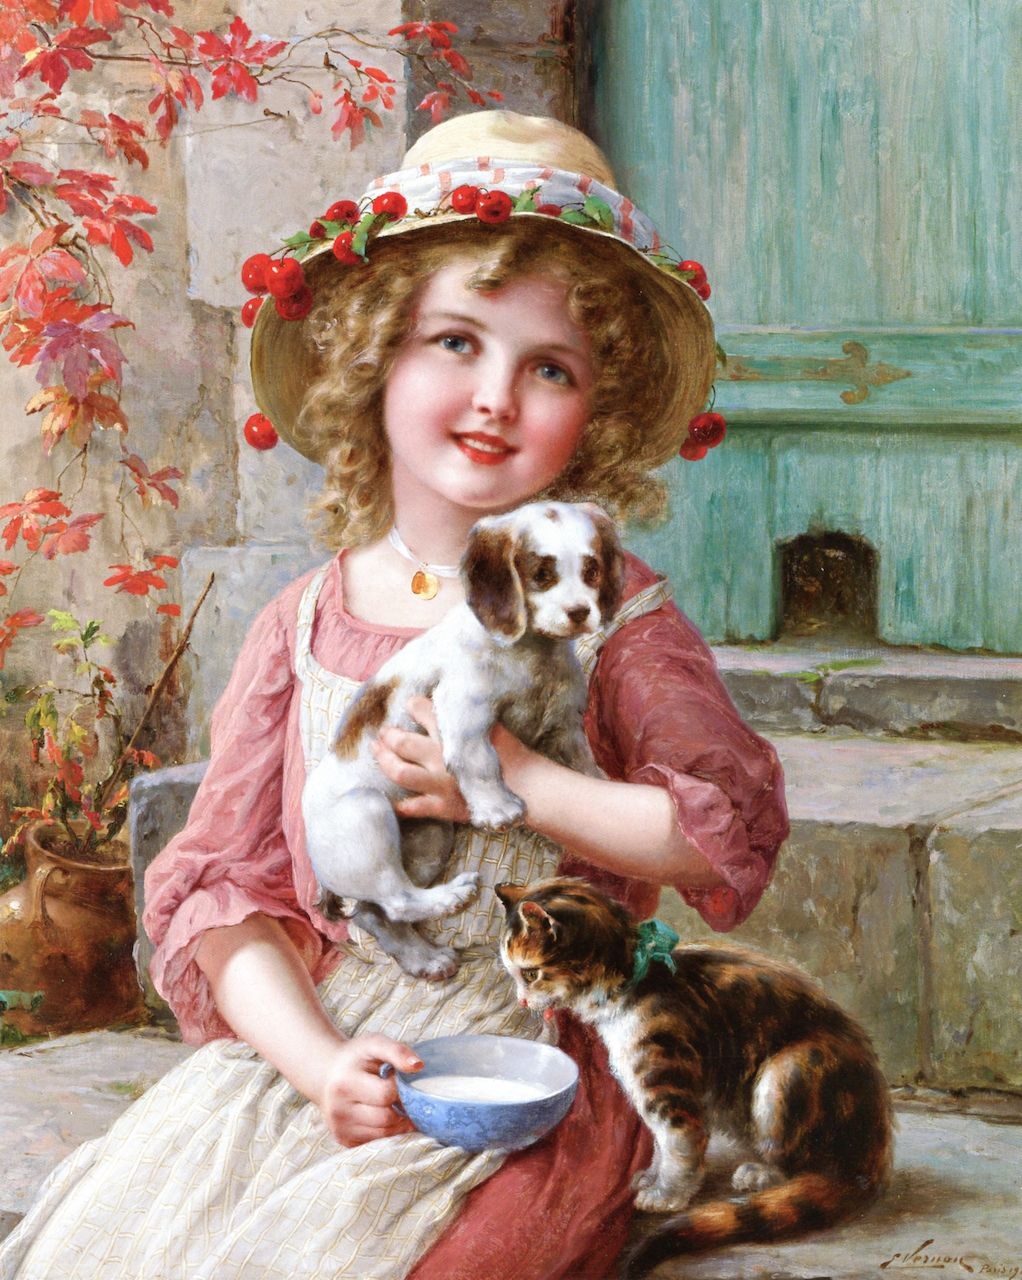 New Friends by Emile Vernon, 1917